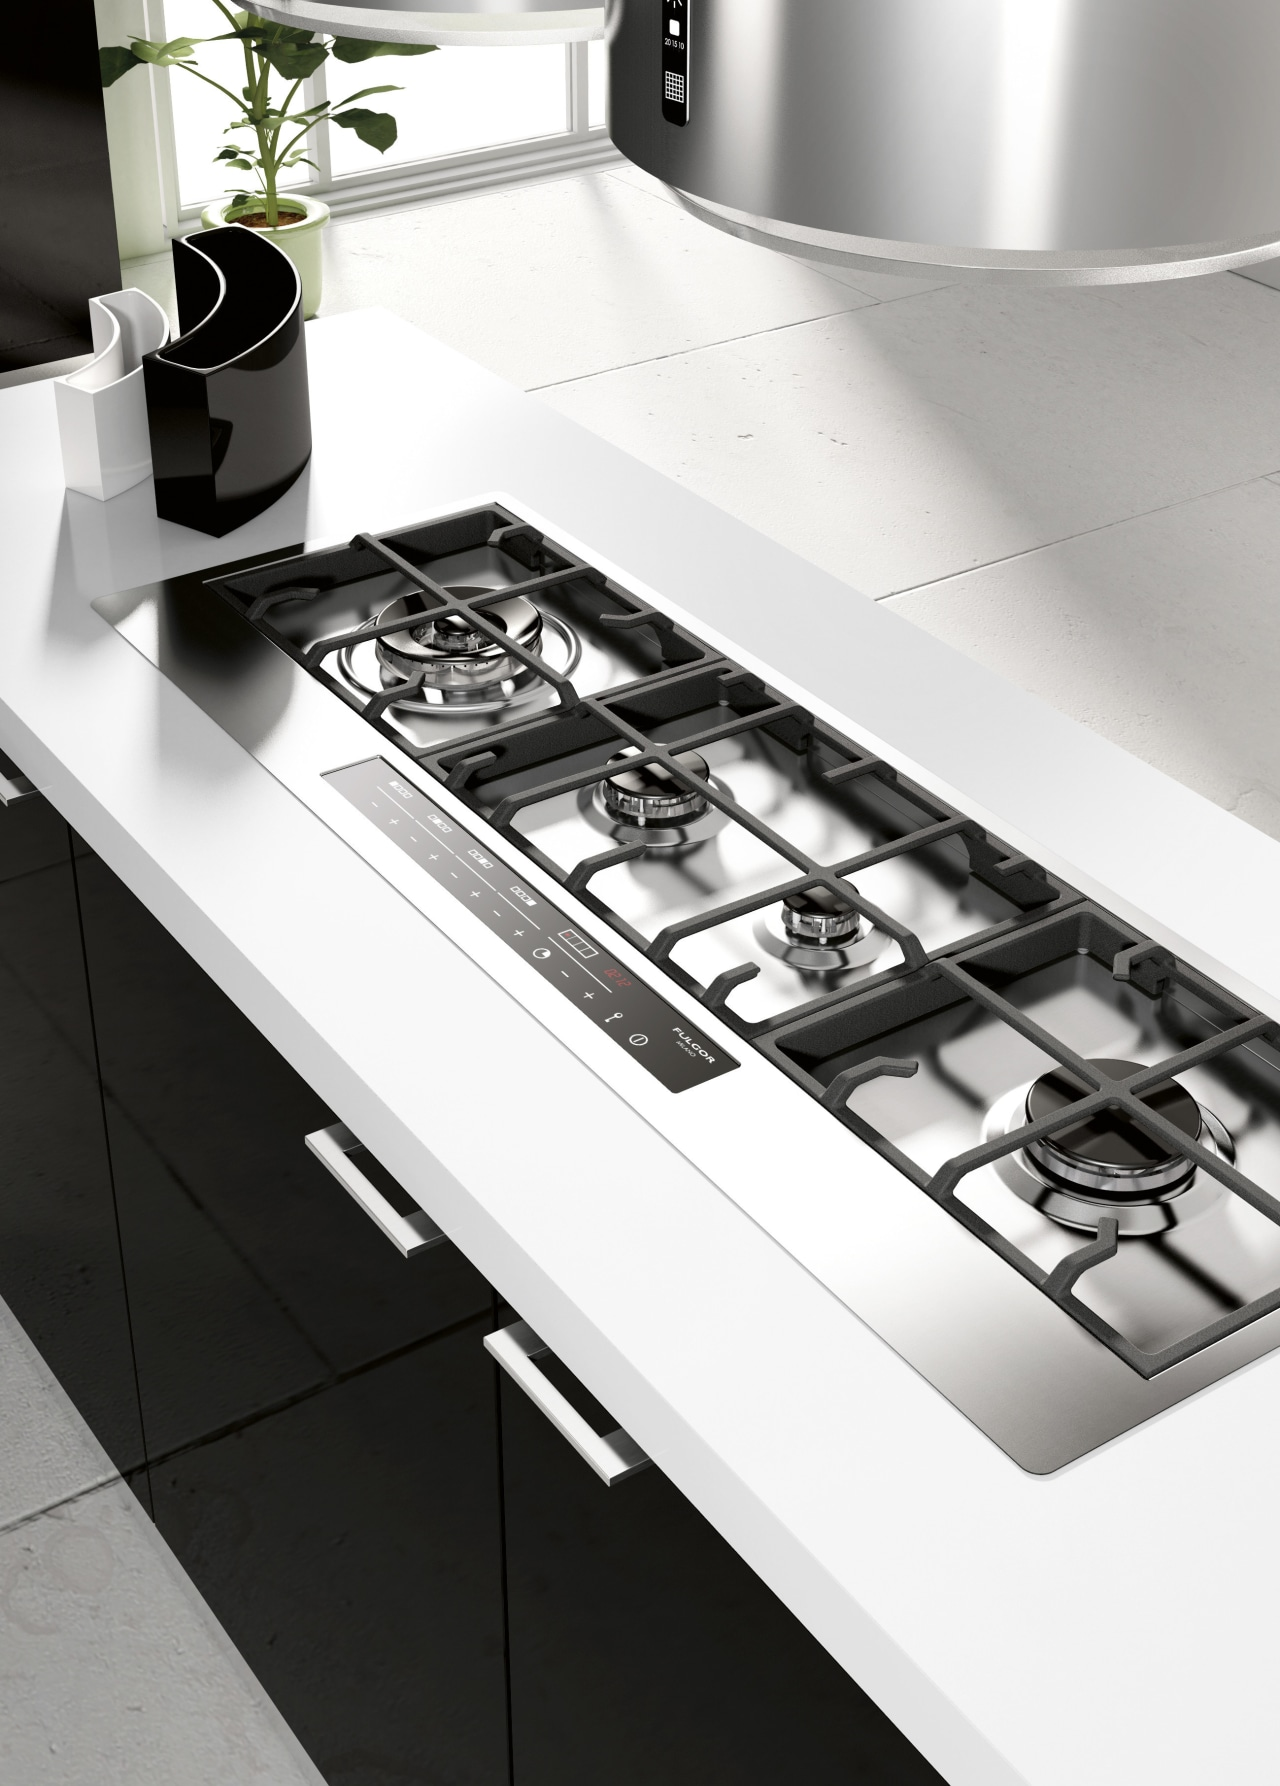 Italian appliance collection by Fulgor Milano black and white, countertop, kitchen, kitchen appliance, kitchen stove, product design, sink, small appliance, table, tap, white, black